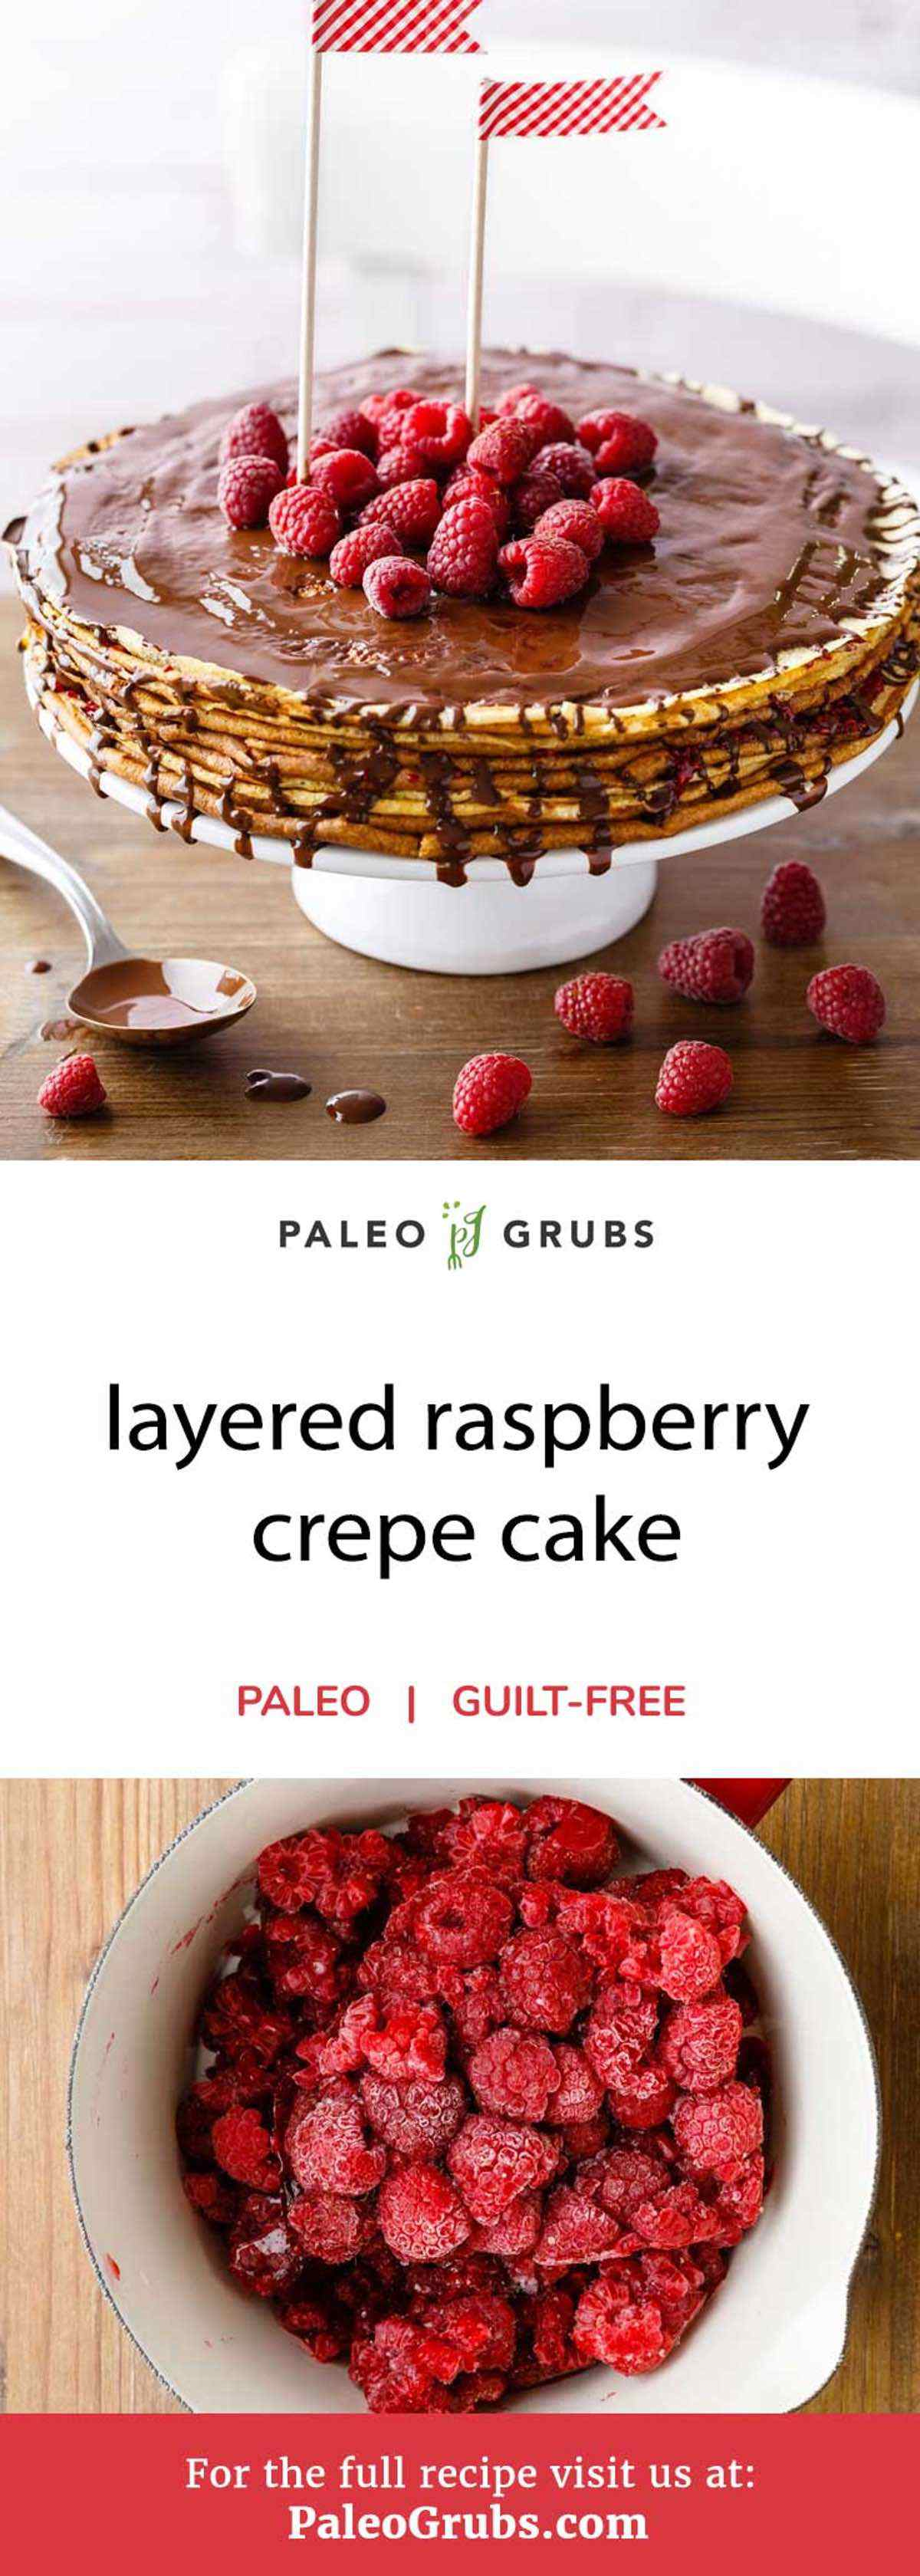 Crepes are an extremely versatile pastry snack. They can be enjoyed for breakfast or as a mid-afternoon snack in equal measure. In order to make them appropriate for paleo dieters to enjoy, this recipe makes raspberry crepe cakes with homemade crepes, raspberry jam, and an optional chocolate glaze. It's one part sweet treat, one part health food, and 100% delicious.